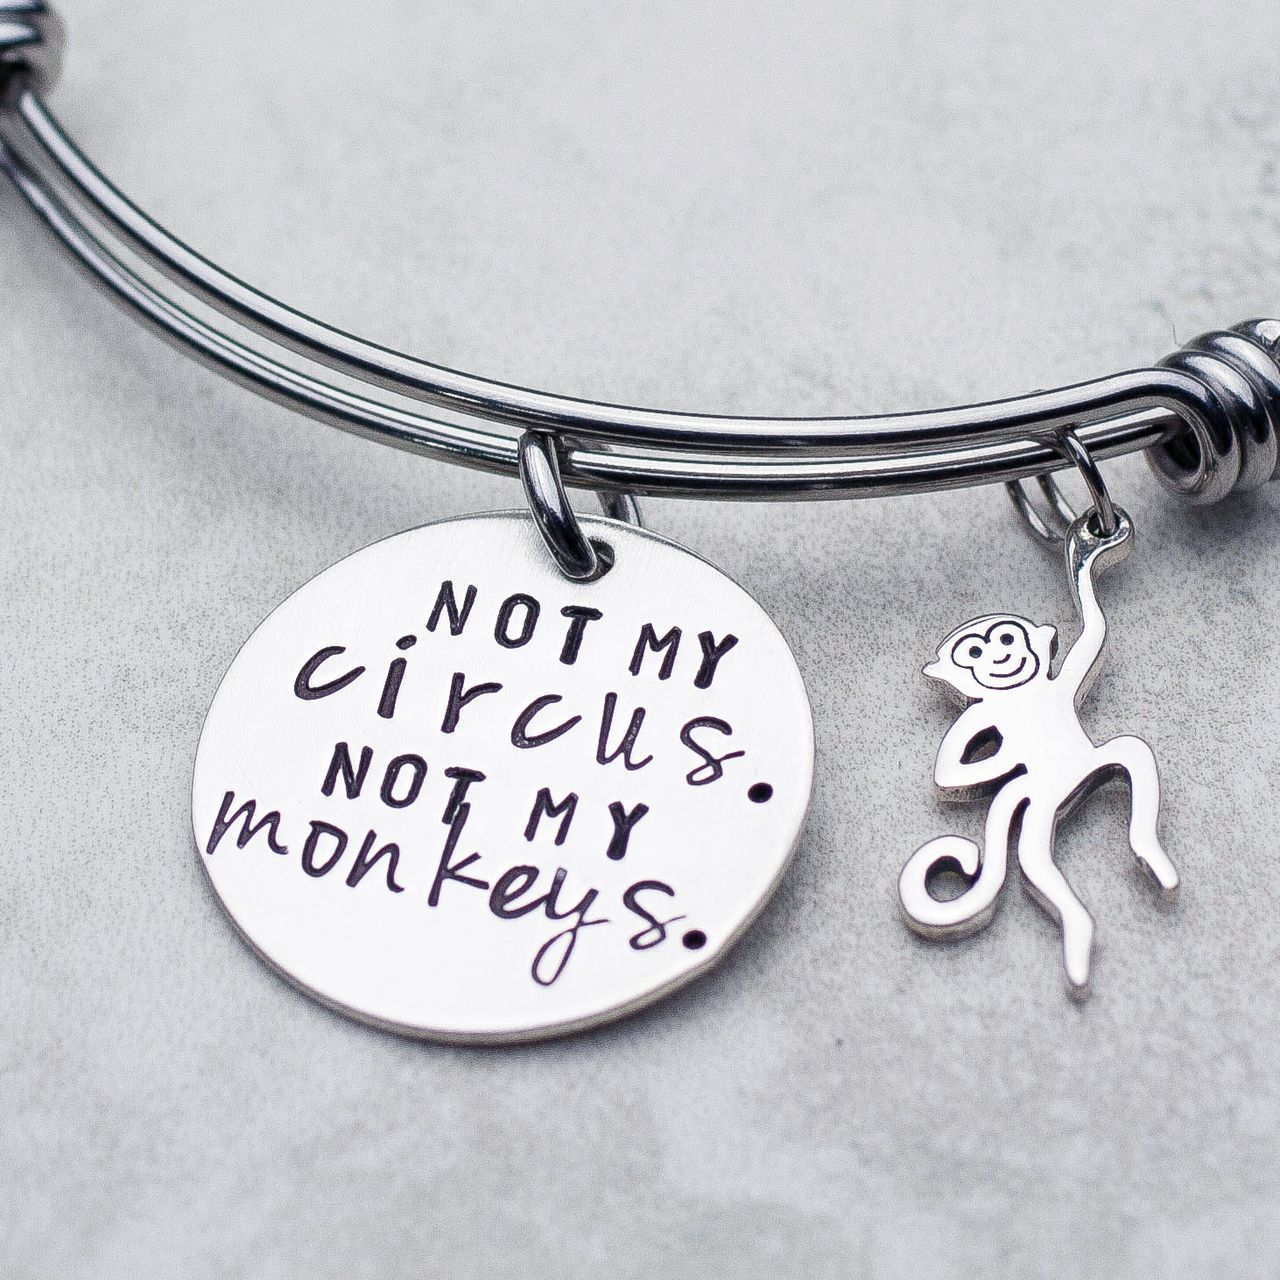 Shop for fun handmade bangle bracelets like this not my circus not my monkeys bracelet at jessie girl jewelry